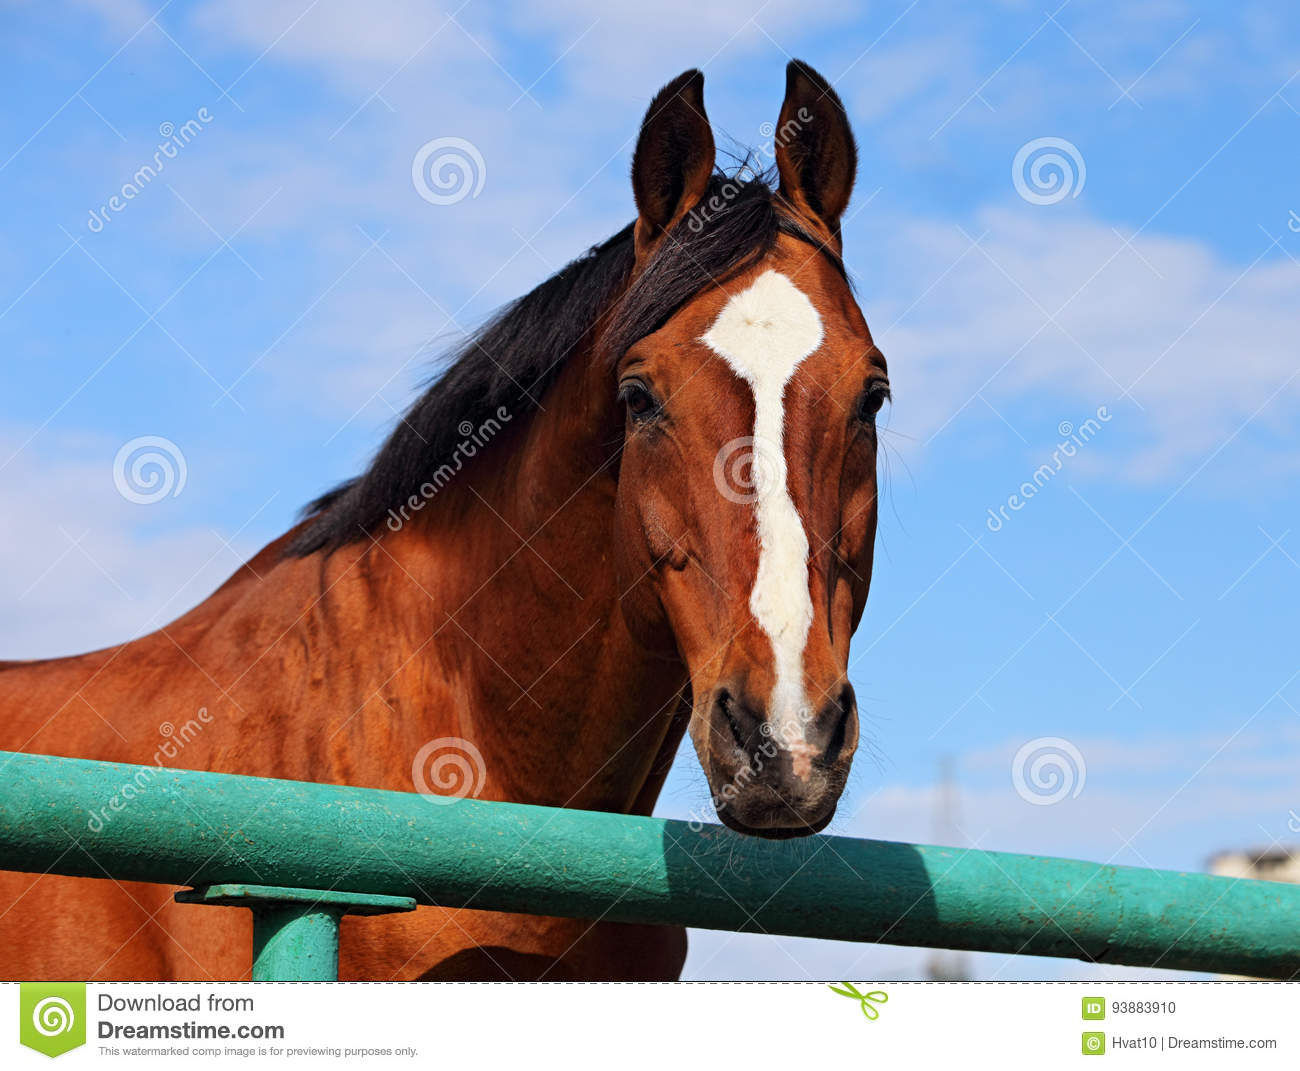 Thoroughbred horse in farm